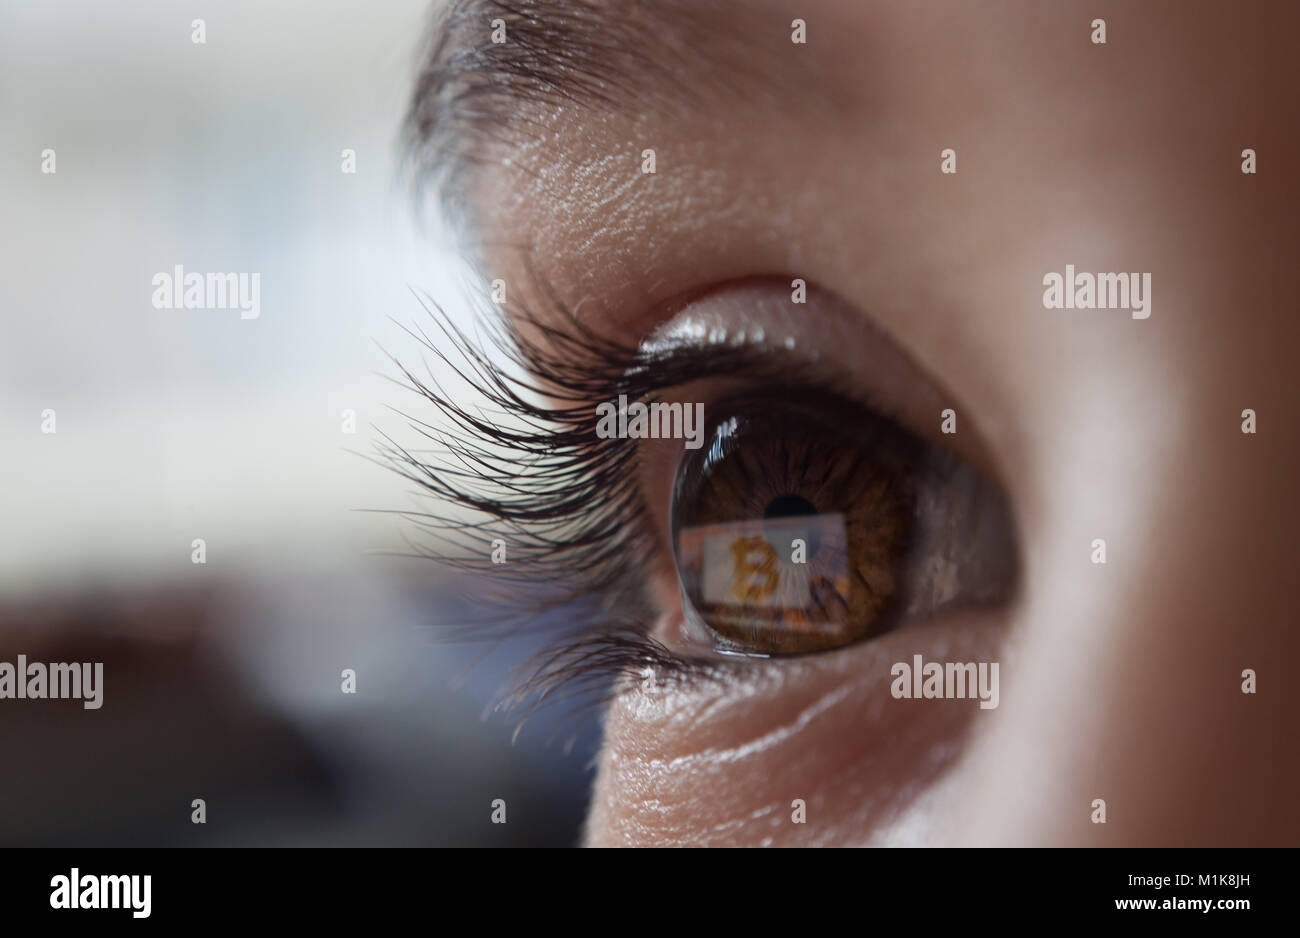 bitcoin reflecting on the screen in the eye Stock Photo